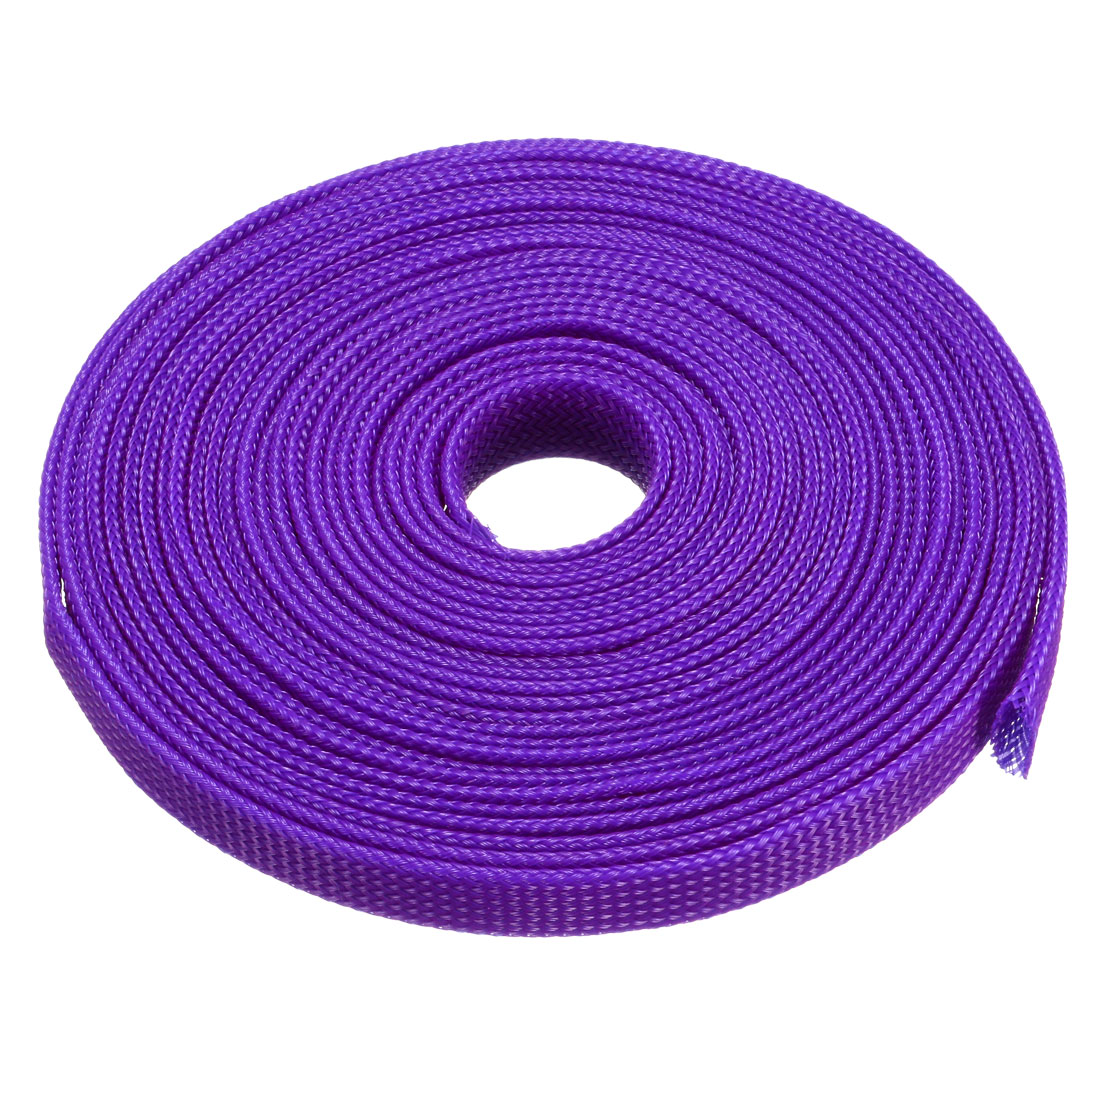 PET Braided Sleeving 16.4 Feet 5m Expandable Cable Wrap 12mm Diameter Wire Sheath Purple